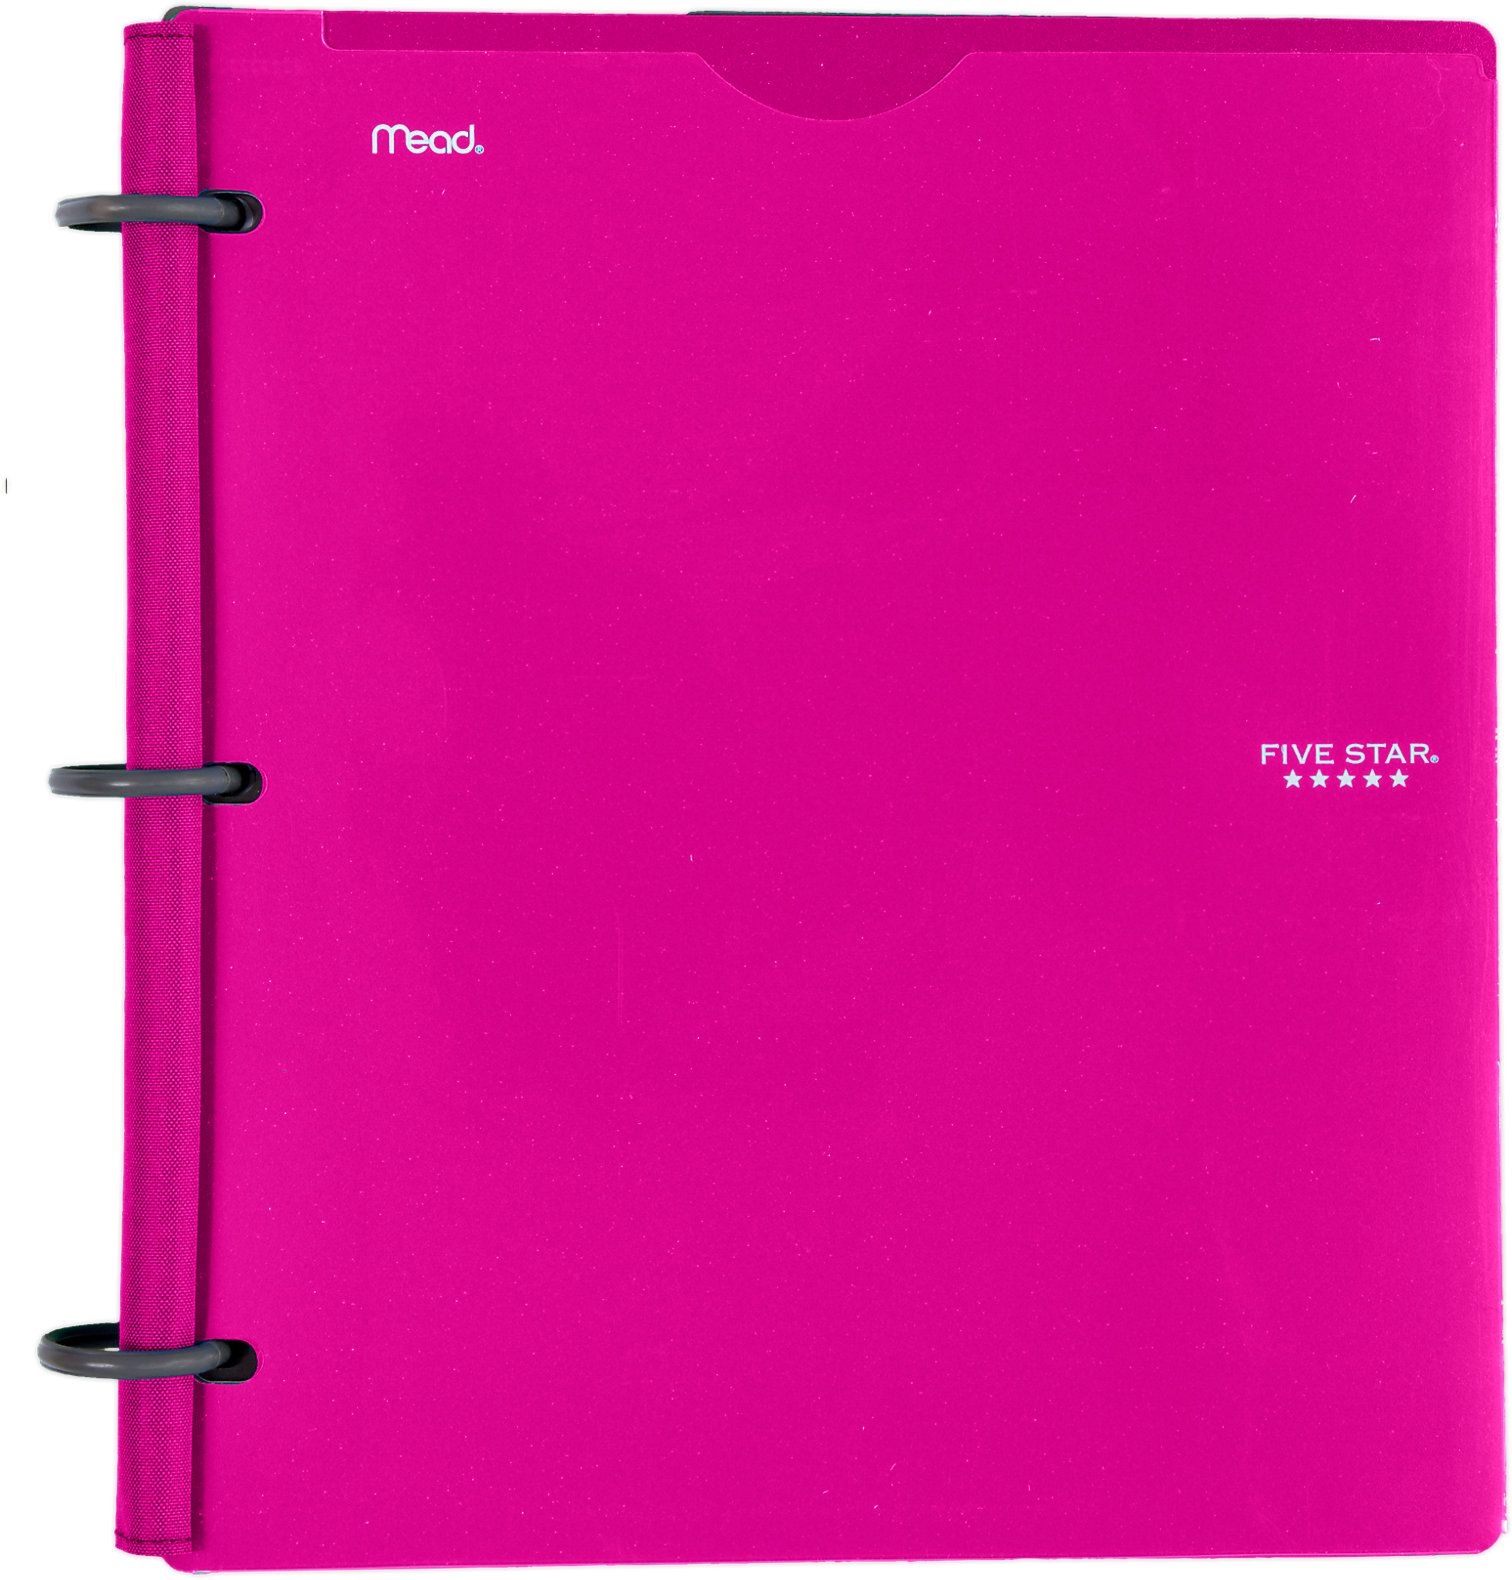 notebinder is a useful product with unique features providing the